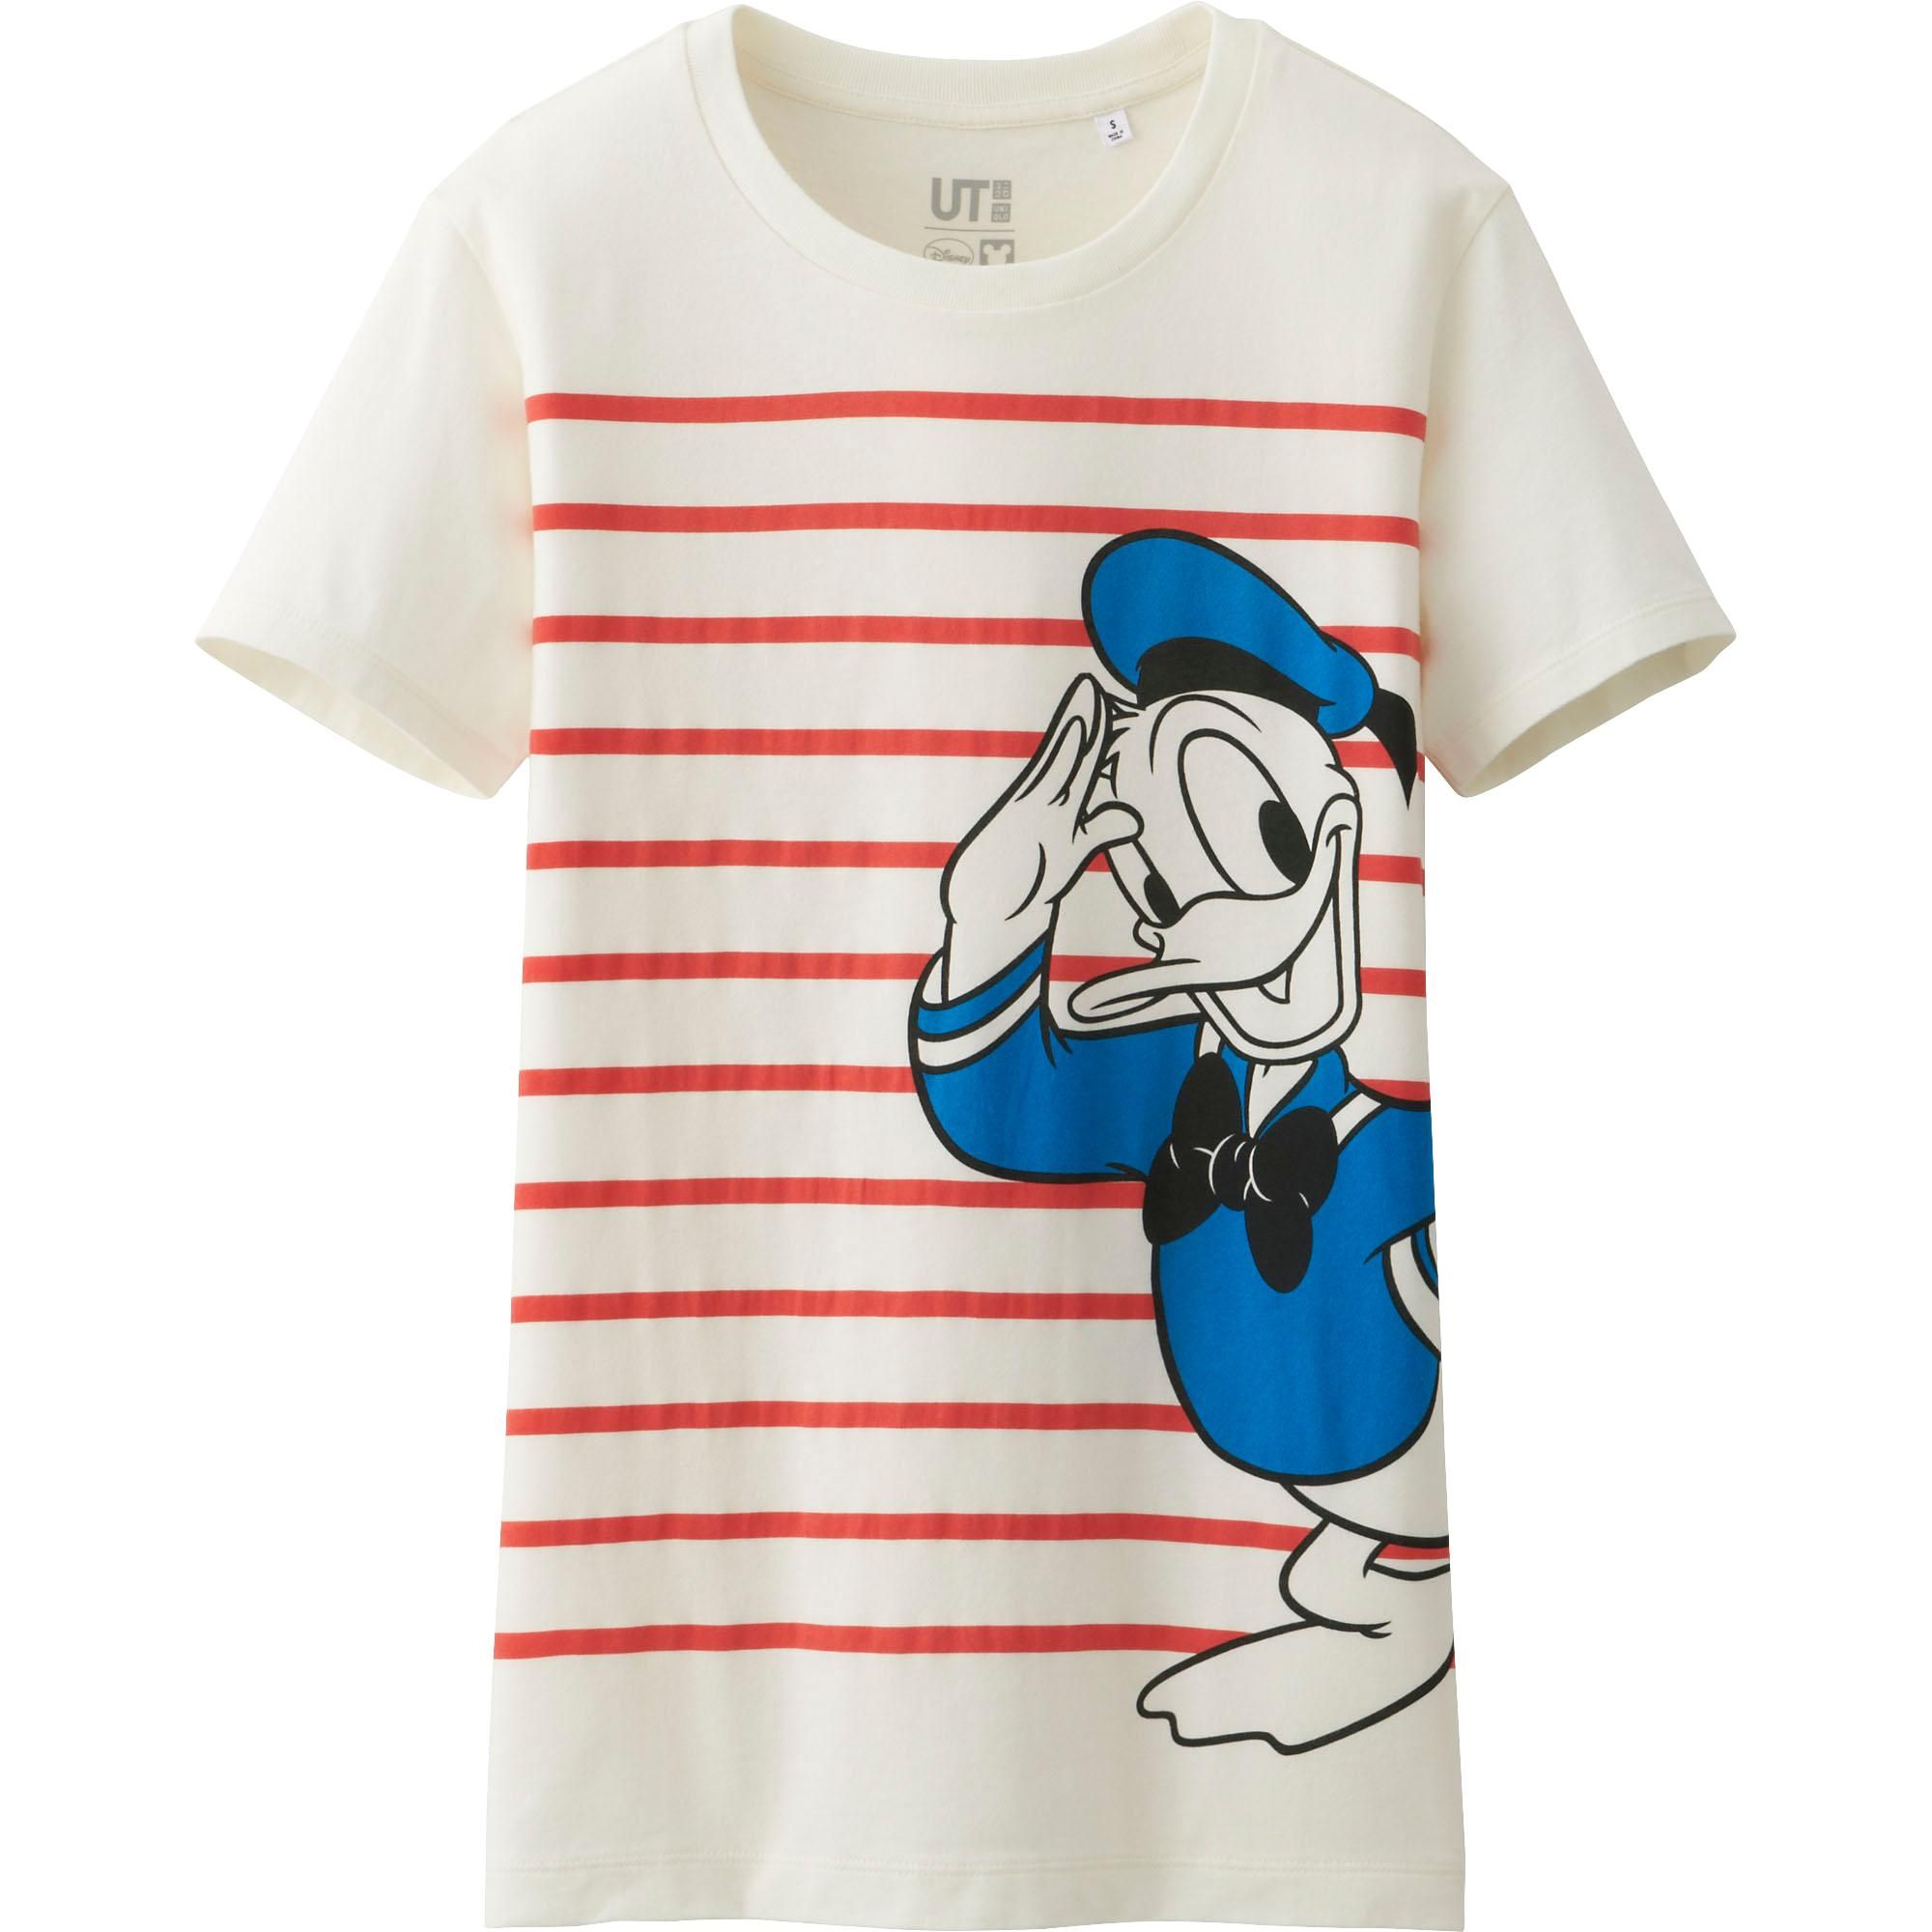 Uniqlo Has A Disney Collection That You Re Going To Love Disney Style Shirt Outfit Women White Graphic Tee Disney Style